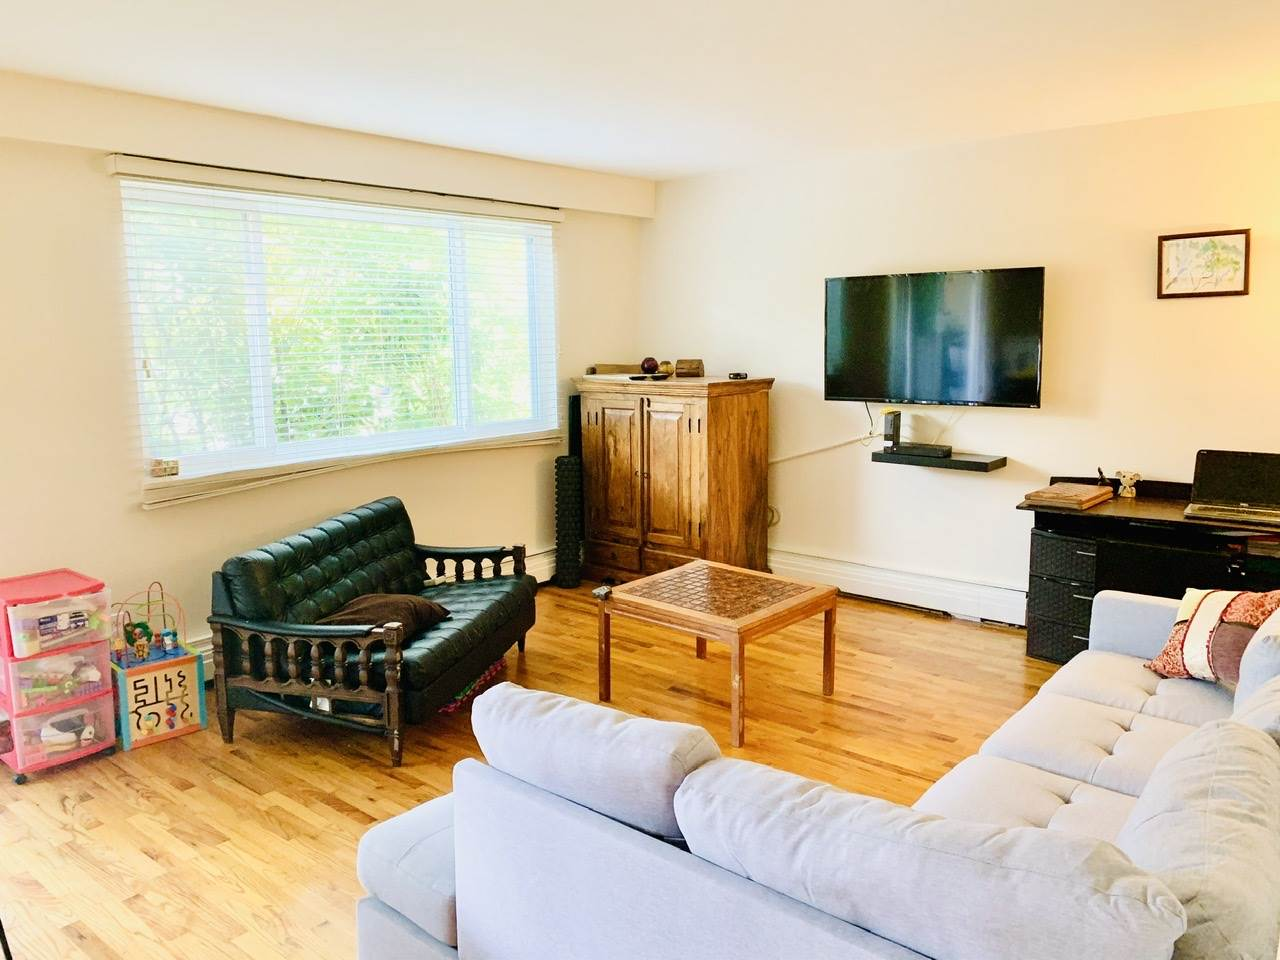 503 555 W 28TH STREET - Upper Lonsdale Apartment/Condo for sale, 2 Bedrooms (R2505885) - #8